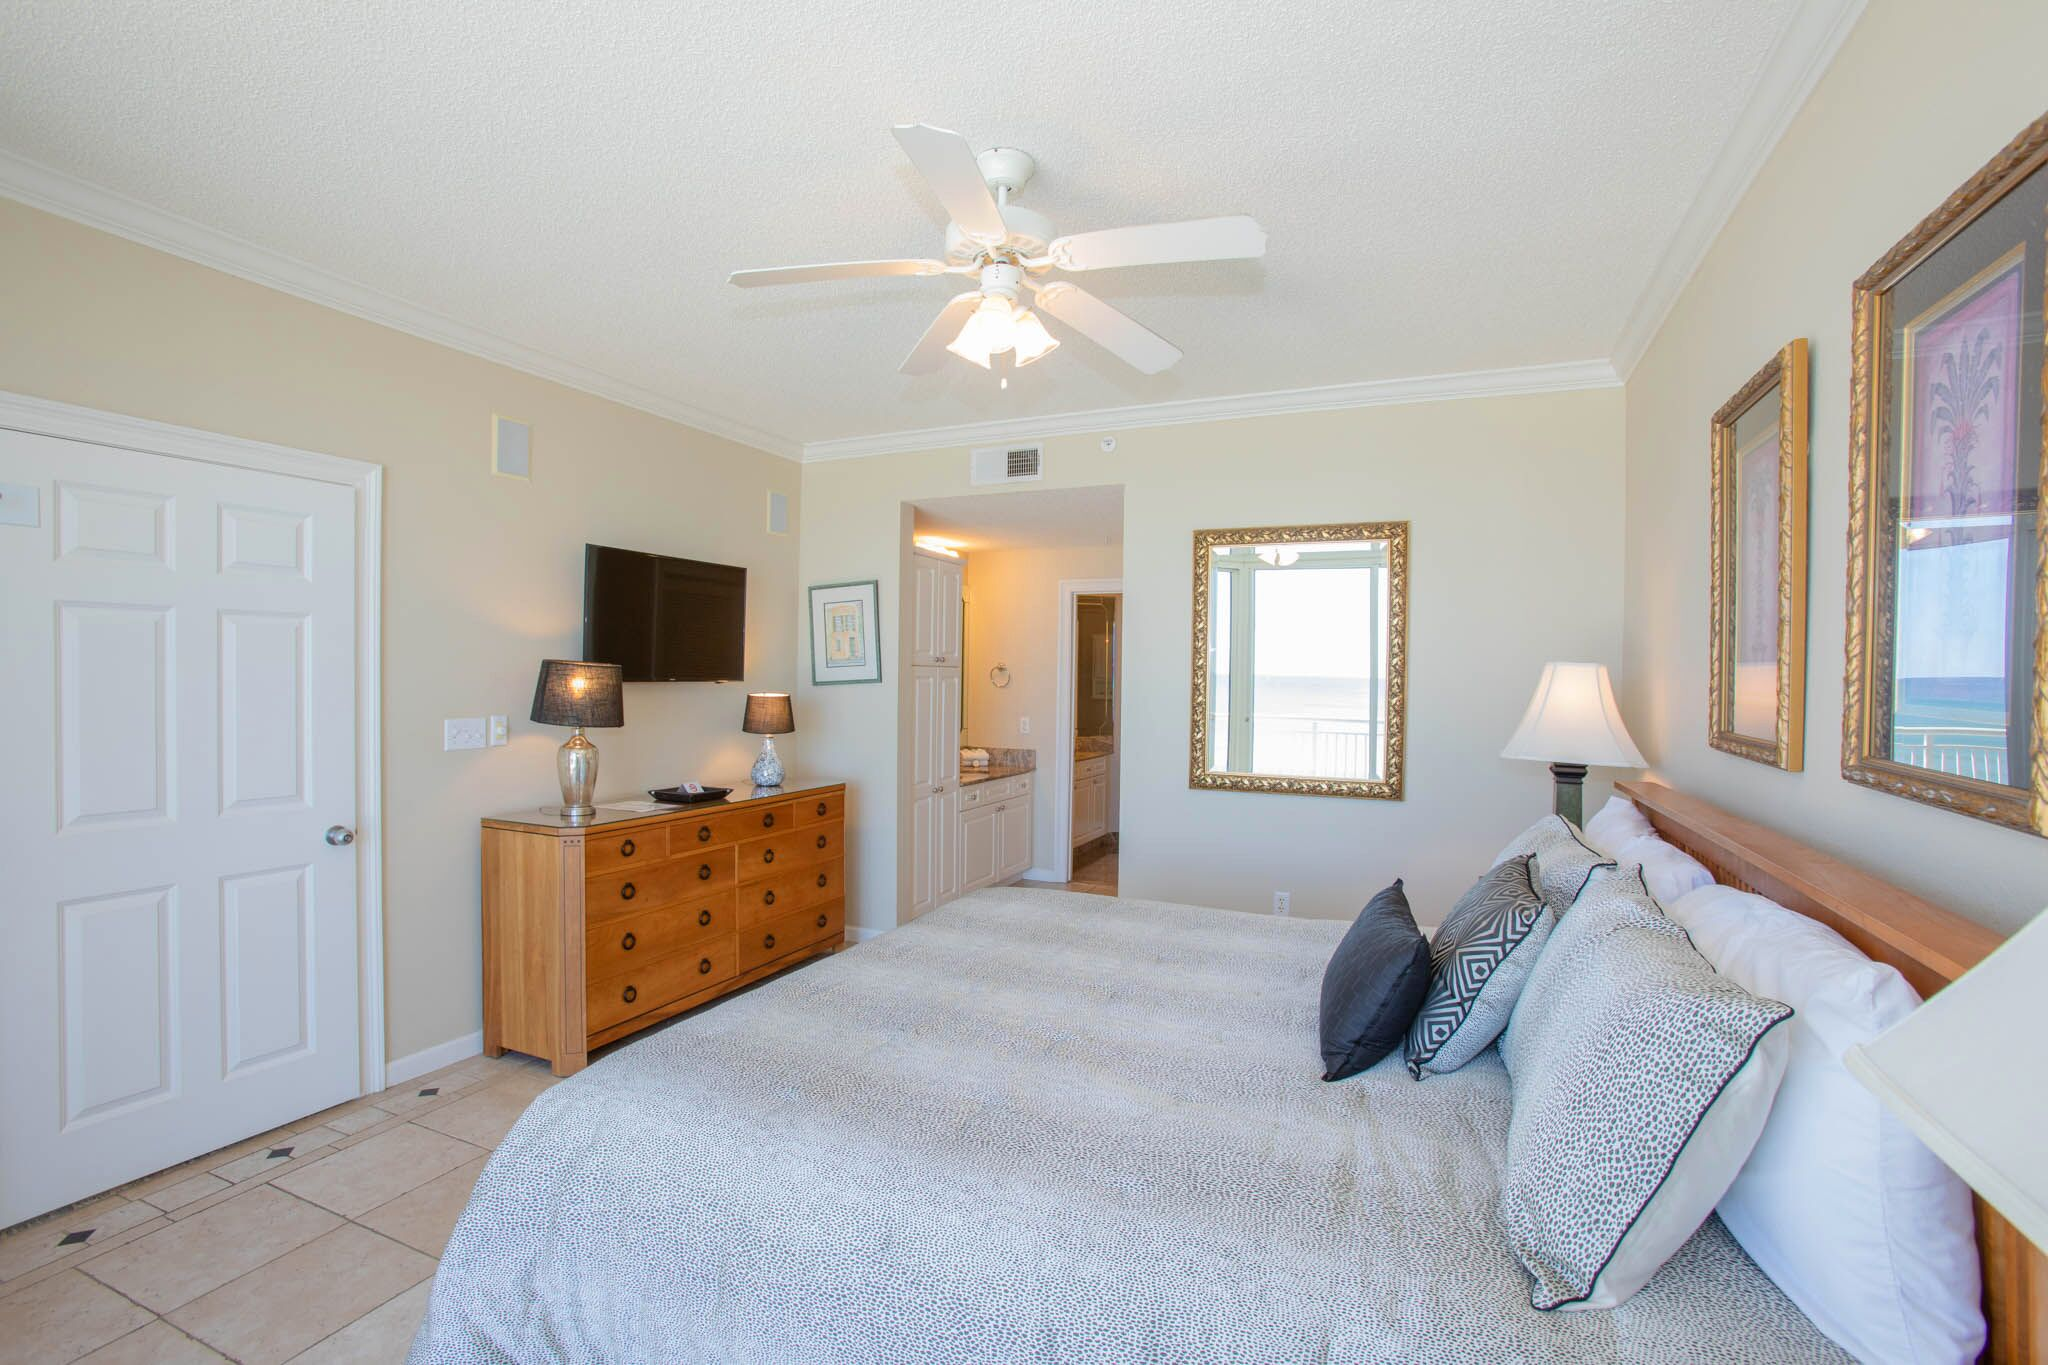 The Pearl of Navarre #504 Condo rental in The Pearl of Navarre Beach in Navarre Florida - #13